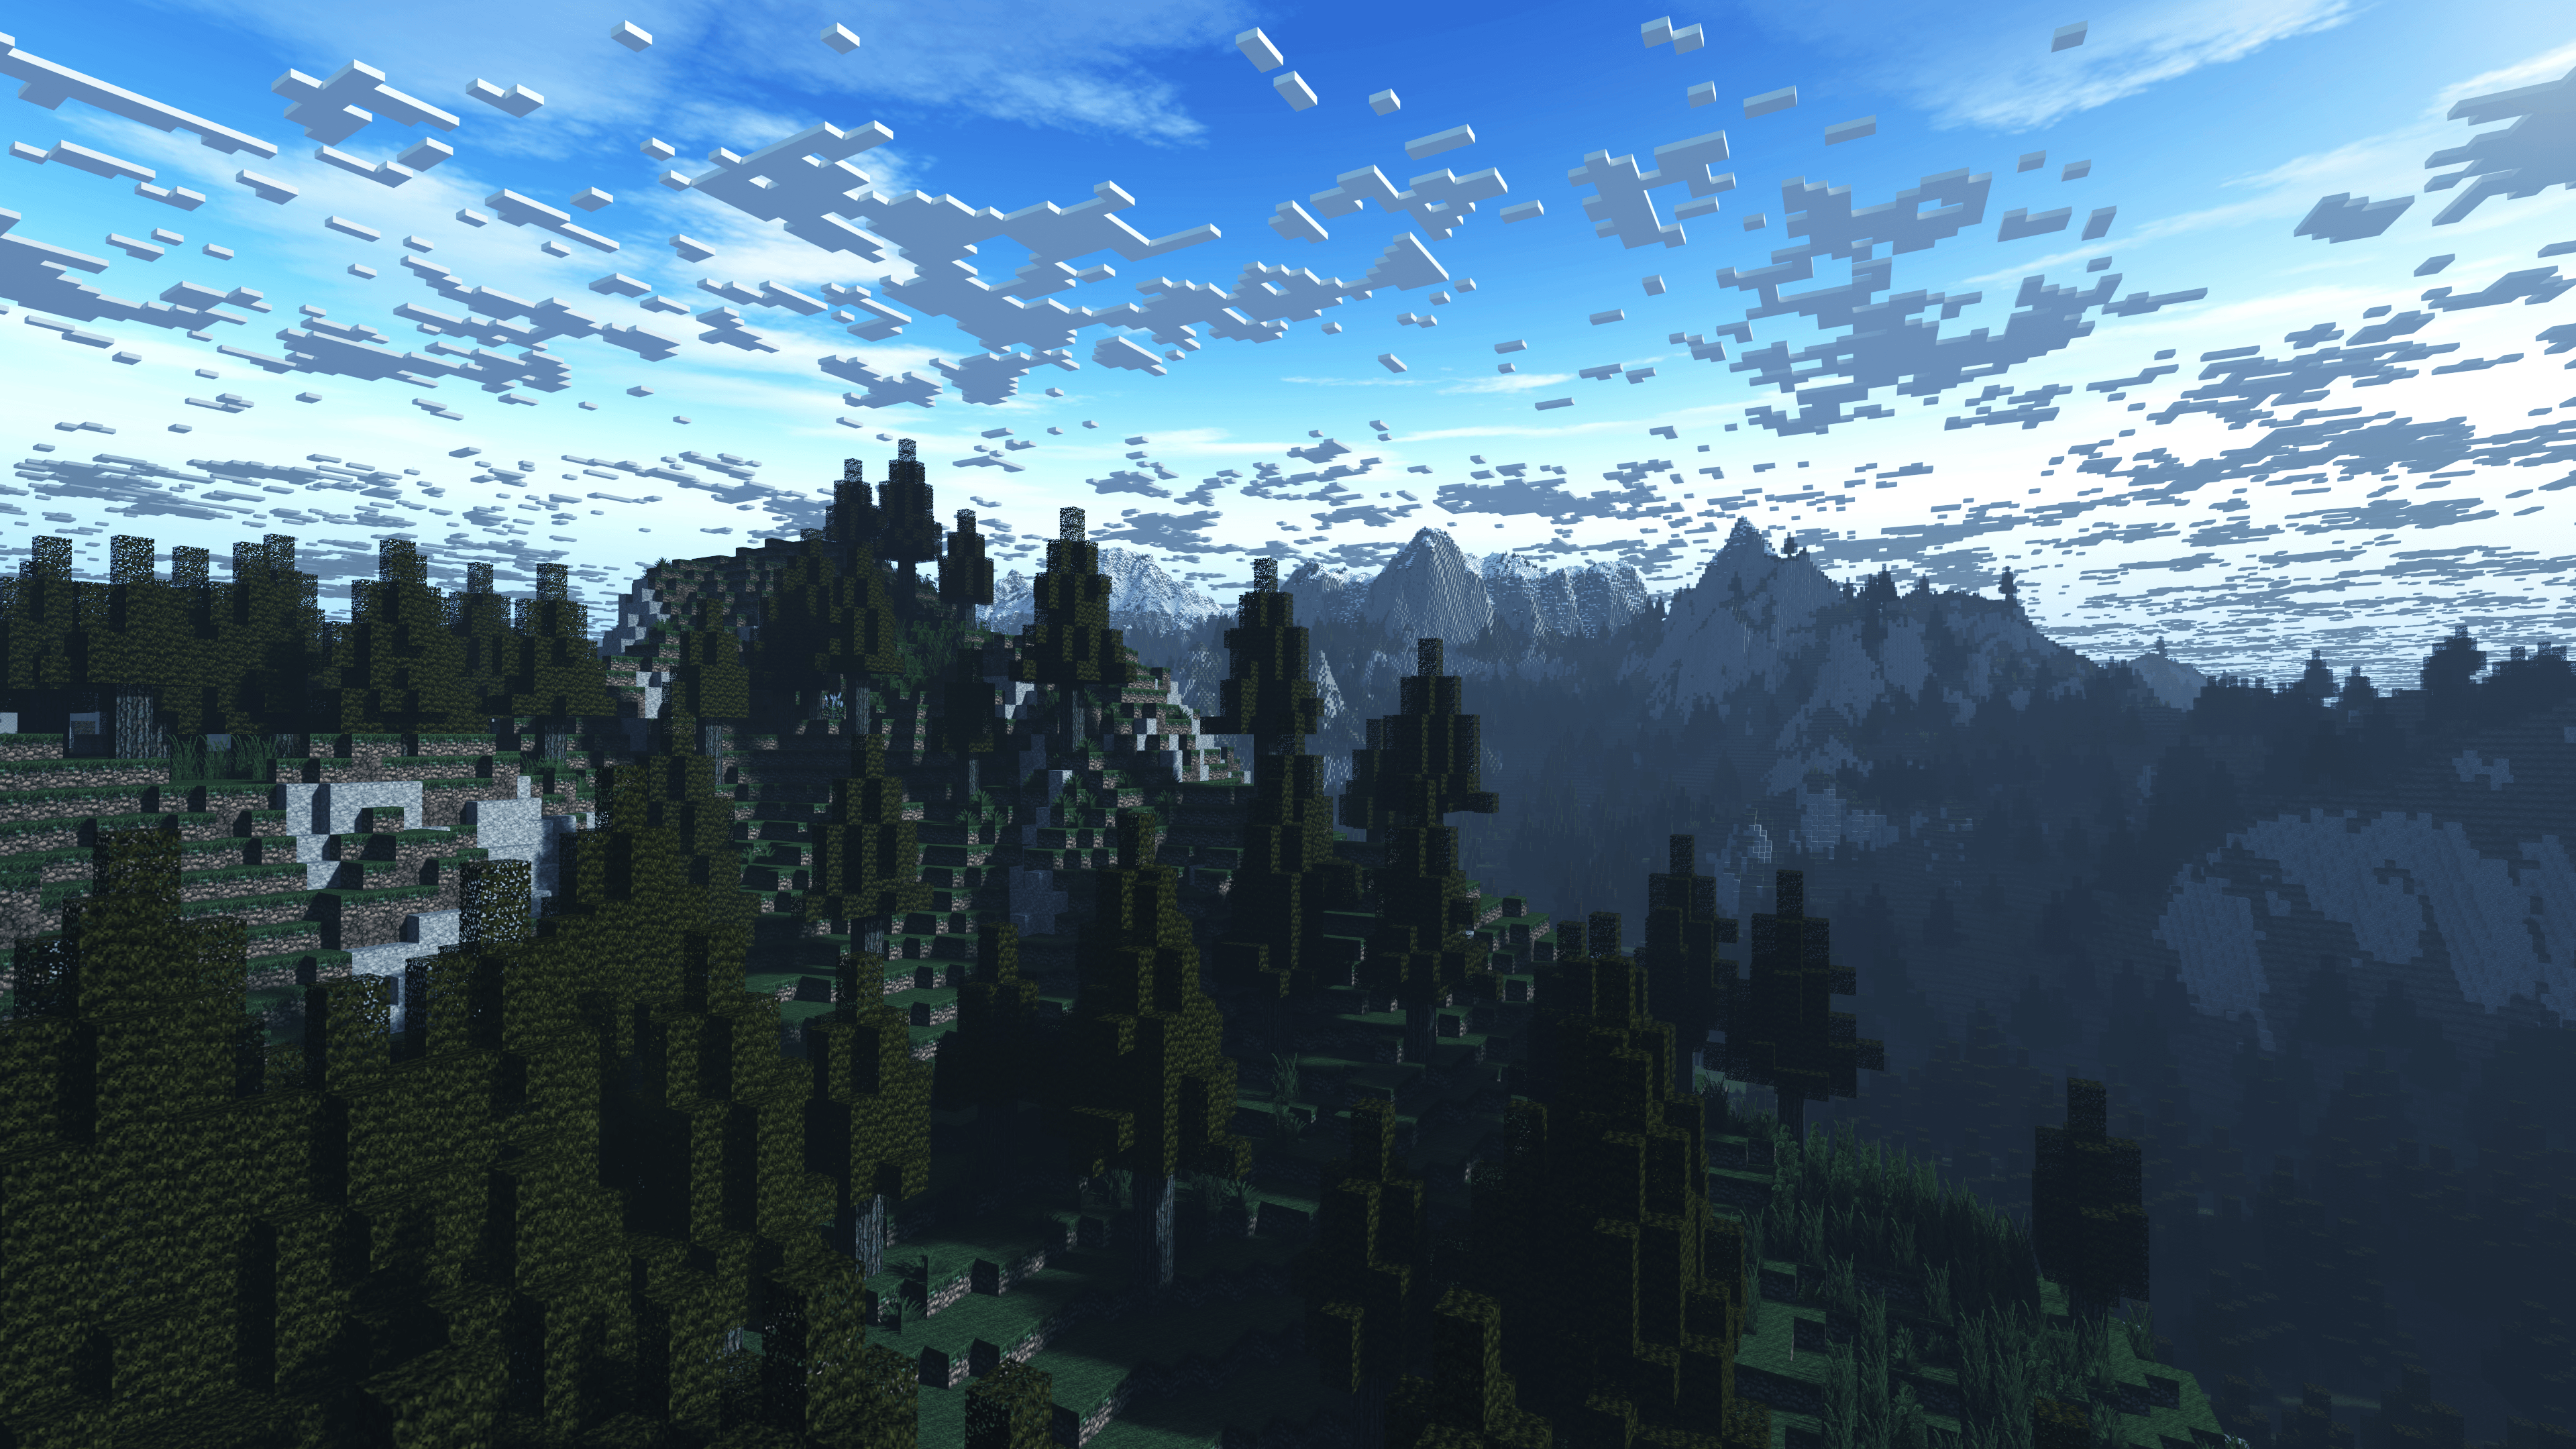 Minecraft Landscape Wallpaper Posted By Sarah Thompson